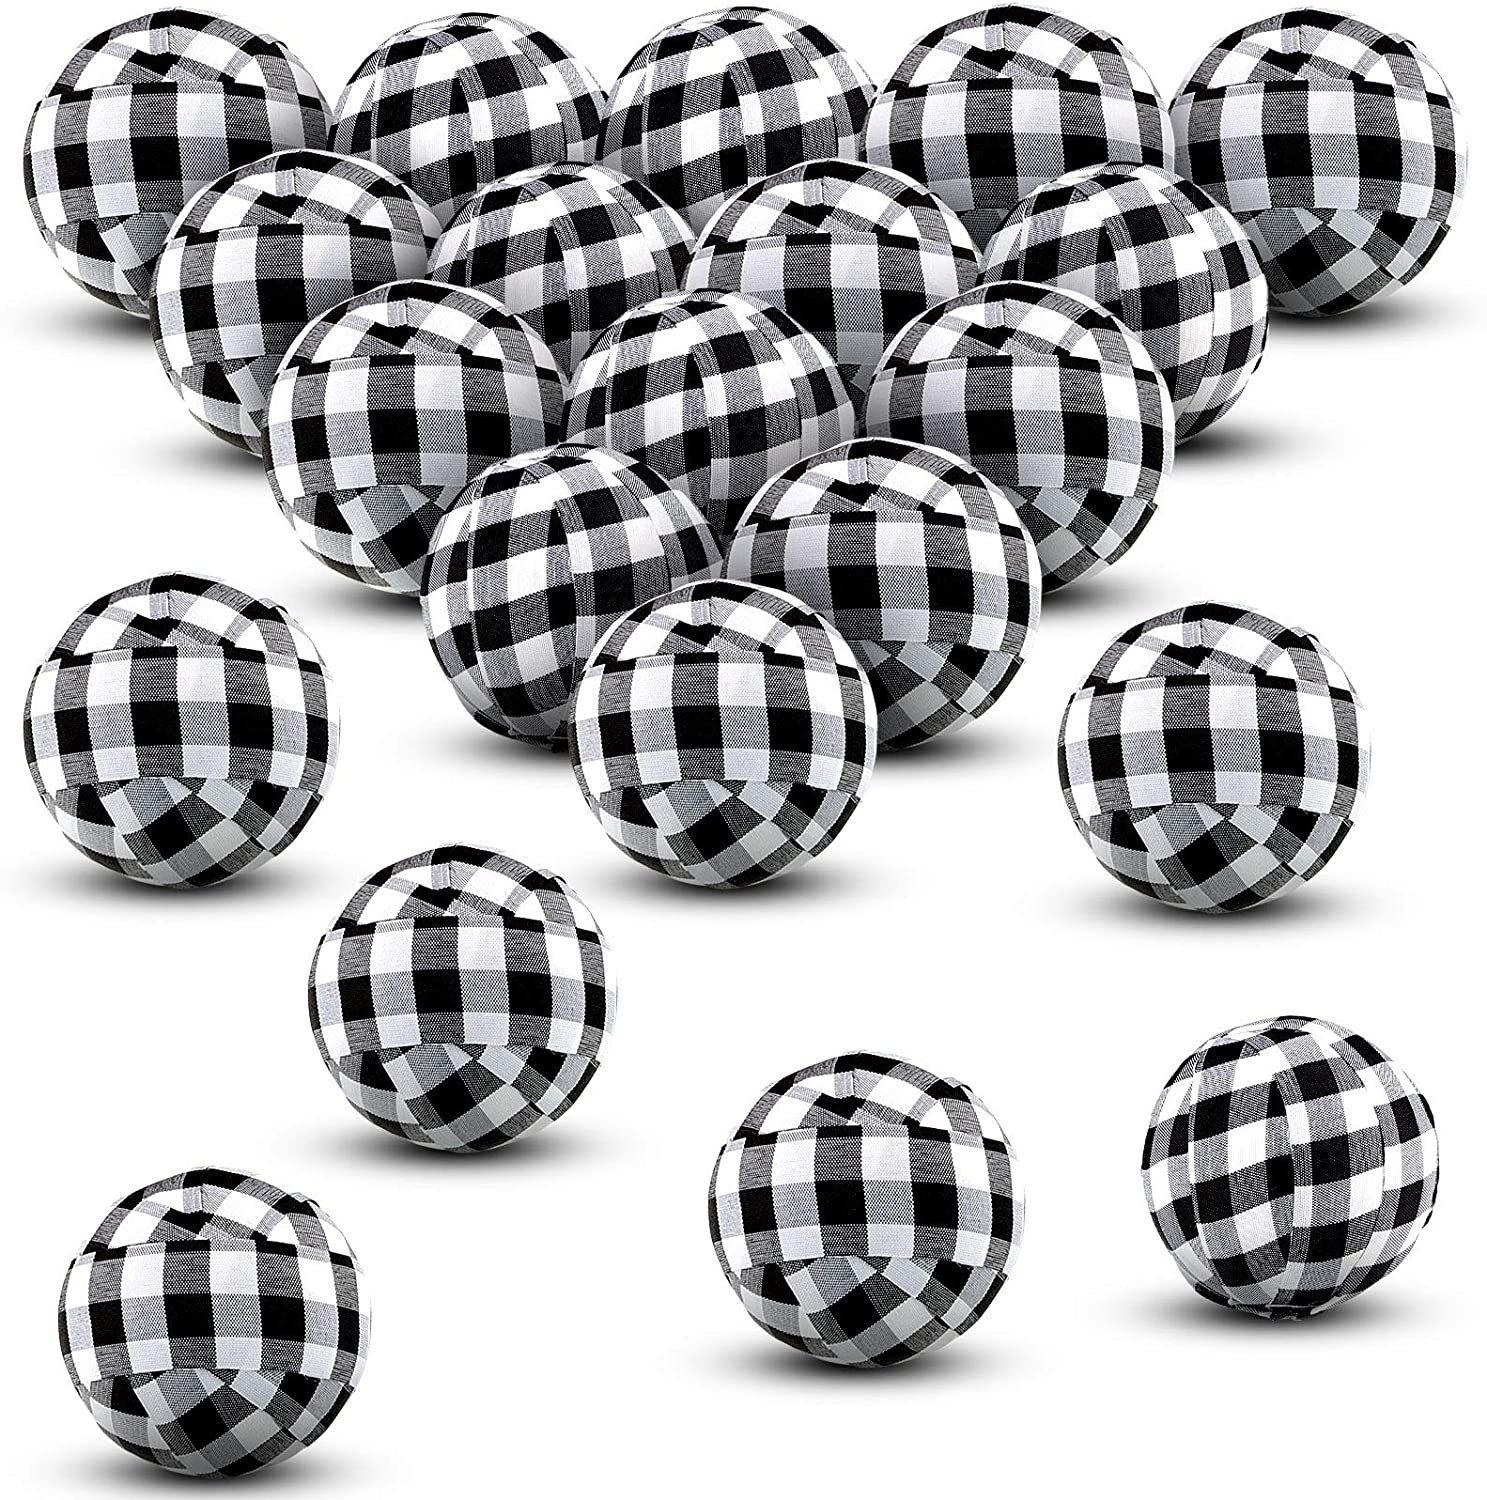 Buffalo Check Balls Plaid Fabric Wrapped Balls 1.57 Inch Gingham Bowl Fillers for Christmas Thanksgiving Holiday Farmhouse Home Party Decoration Favors (20 Pieces)